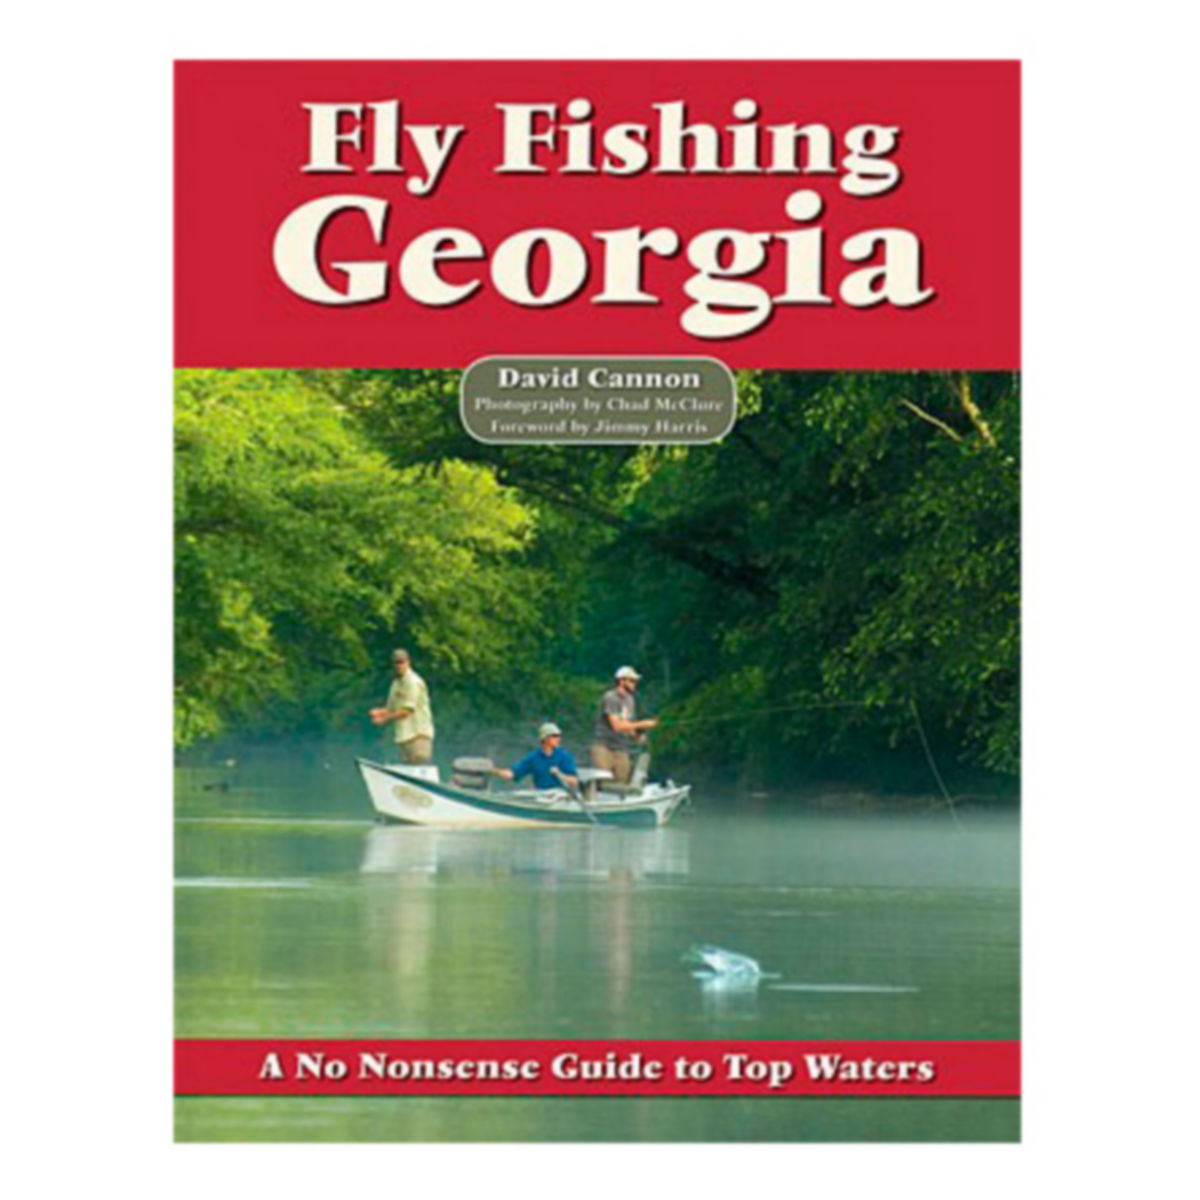 No Nonsense Guide to Fly Fishing Georgia - image number 0